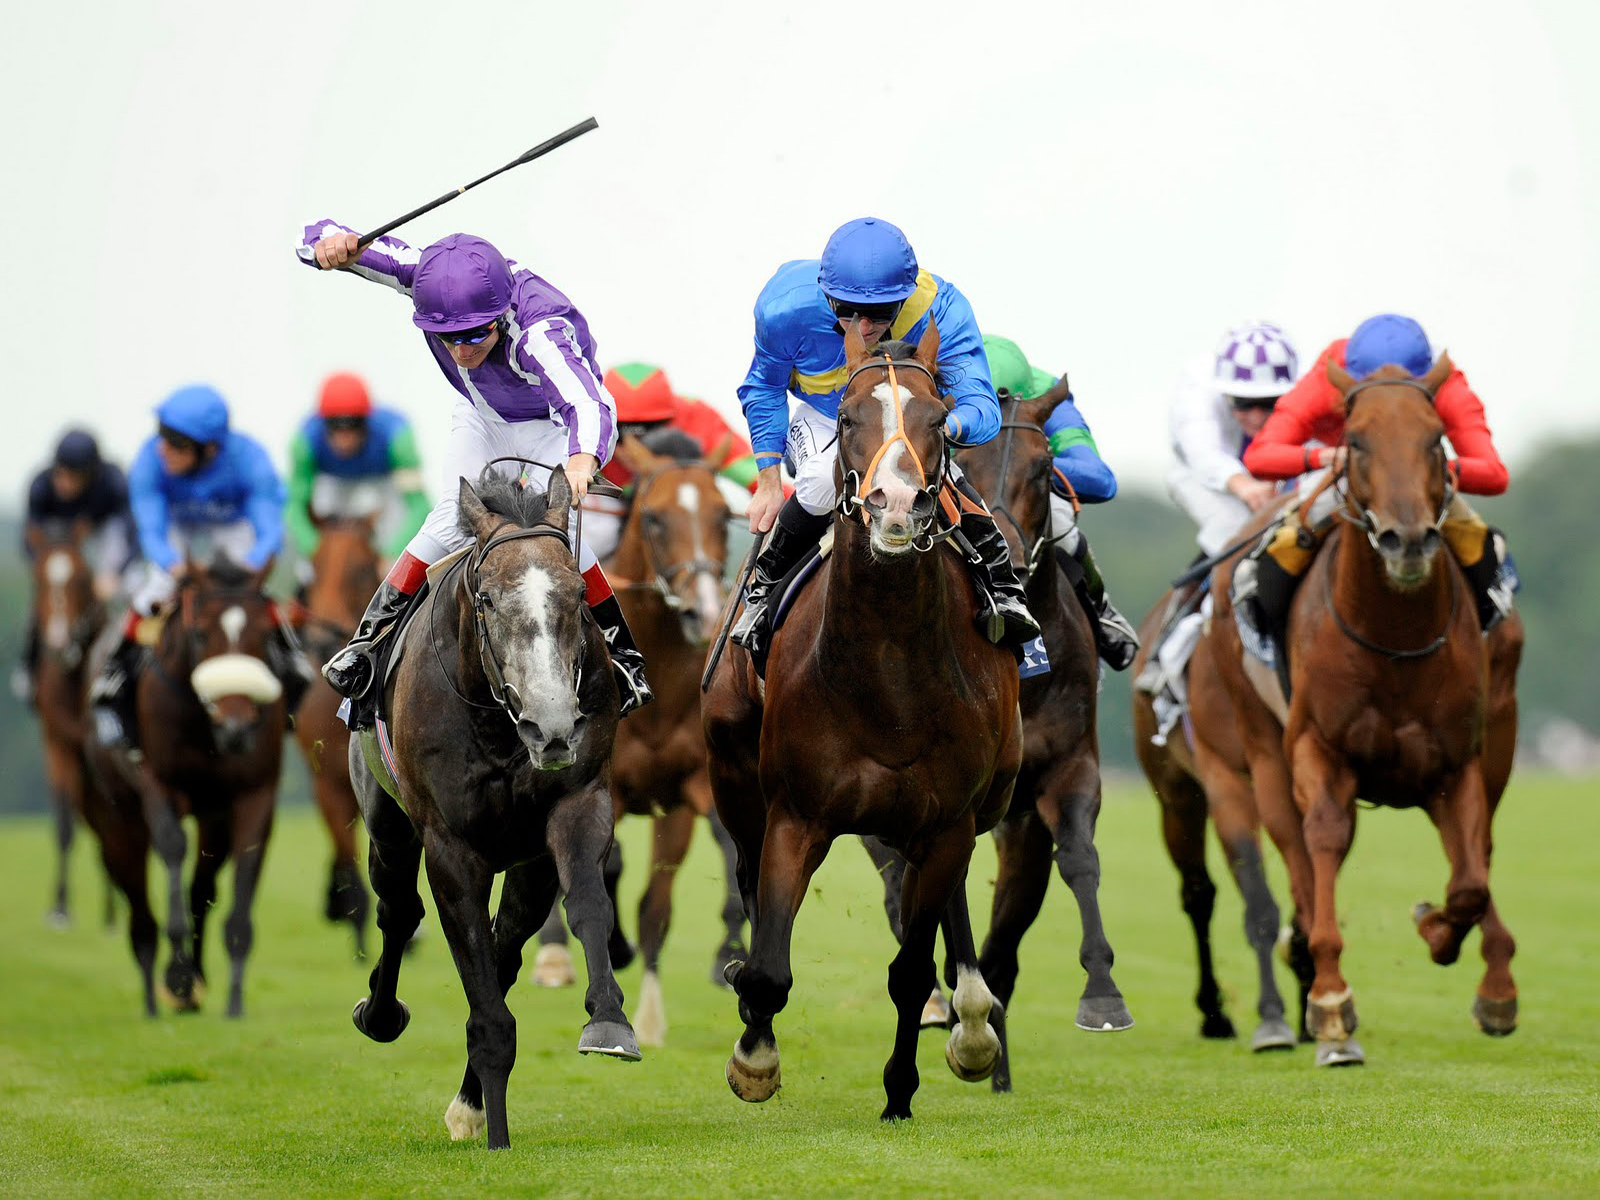 Horse Racing Spreadsheet Download With Free Sports Betting Spreadsheet For Horse Racing